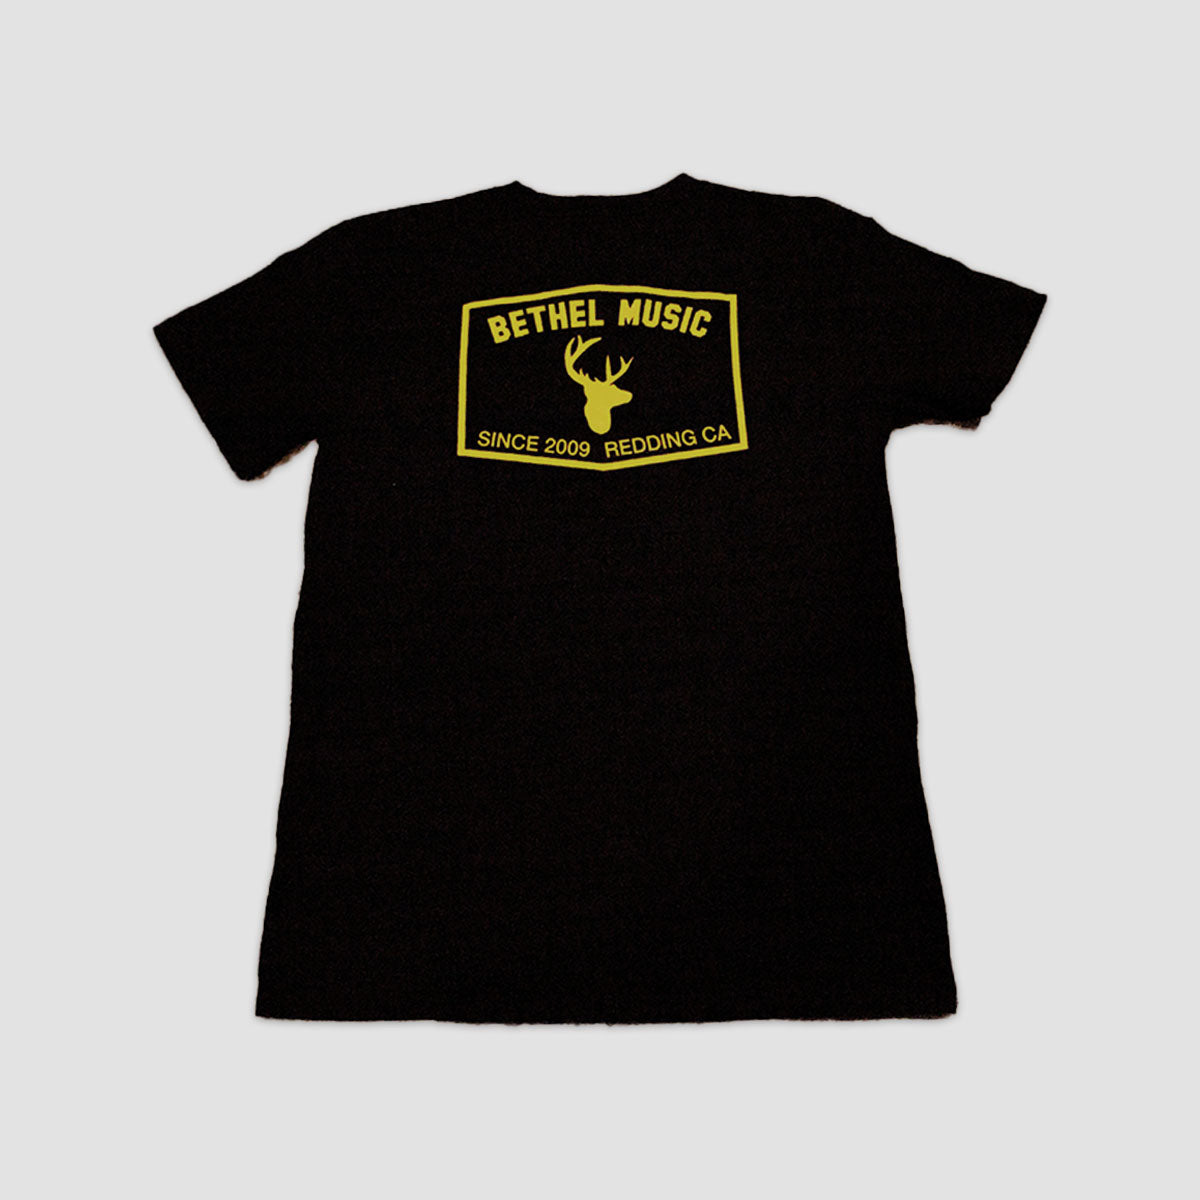 Since 2009 Short Sleeve Tee